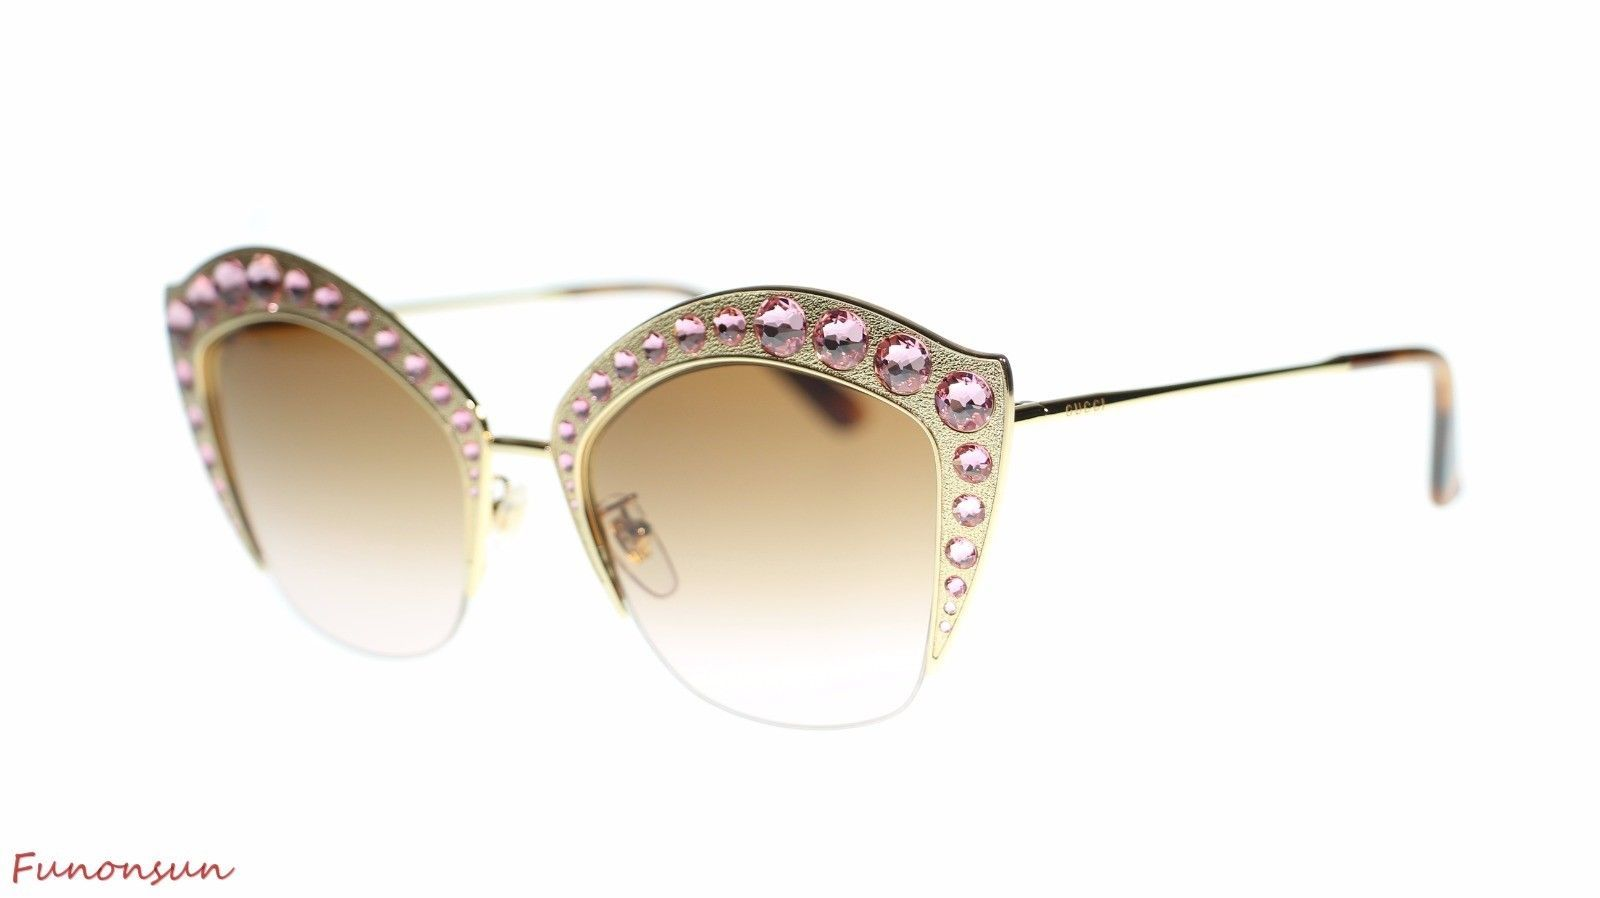 ea120296bcf7d Gucci Women Cat Eye Sunglasses GG0114S 002 and 42 similar items. 10